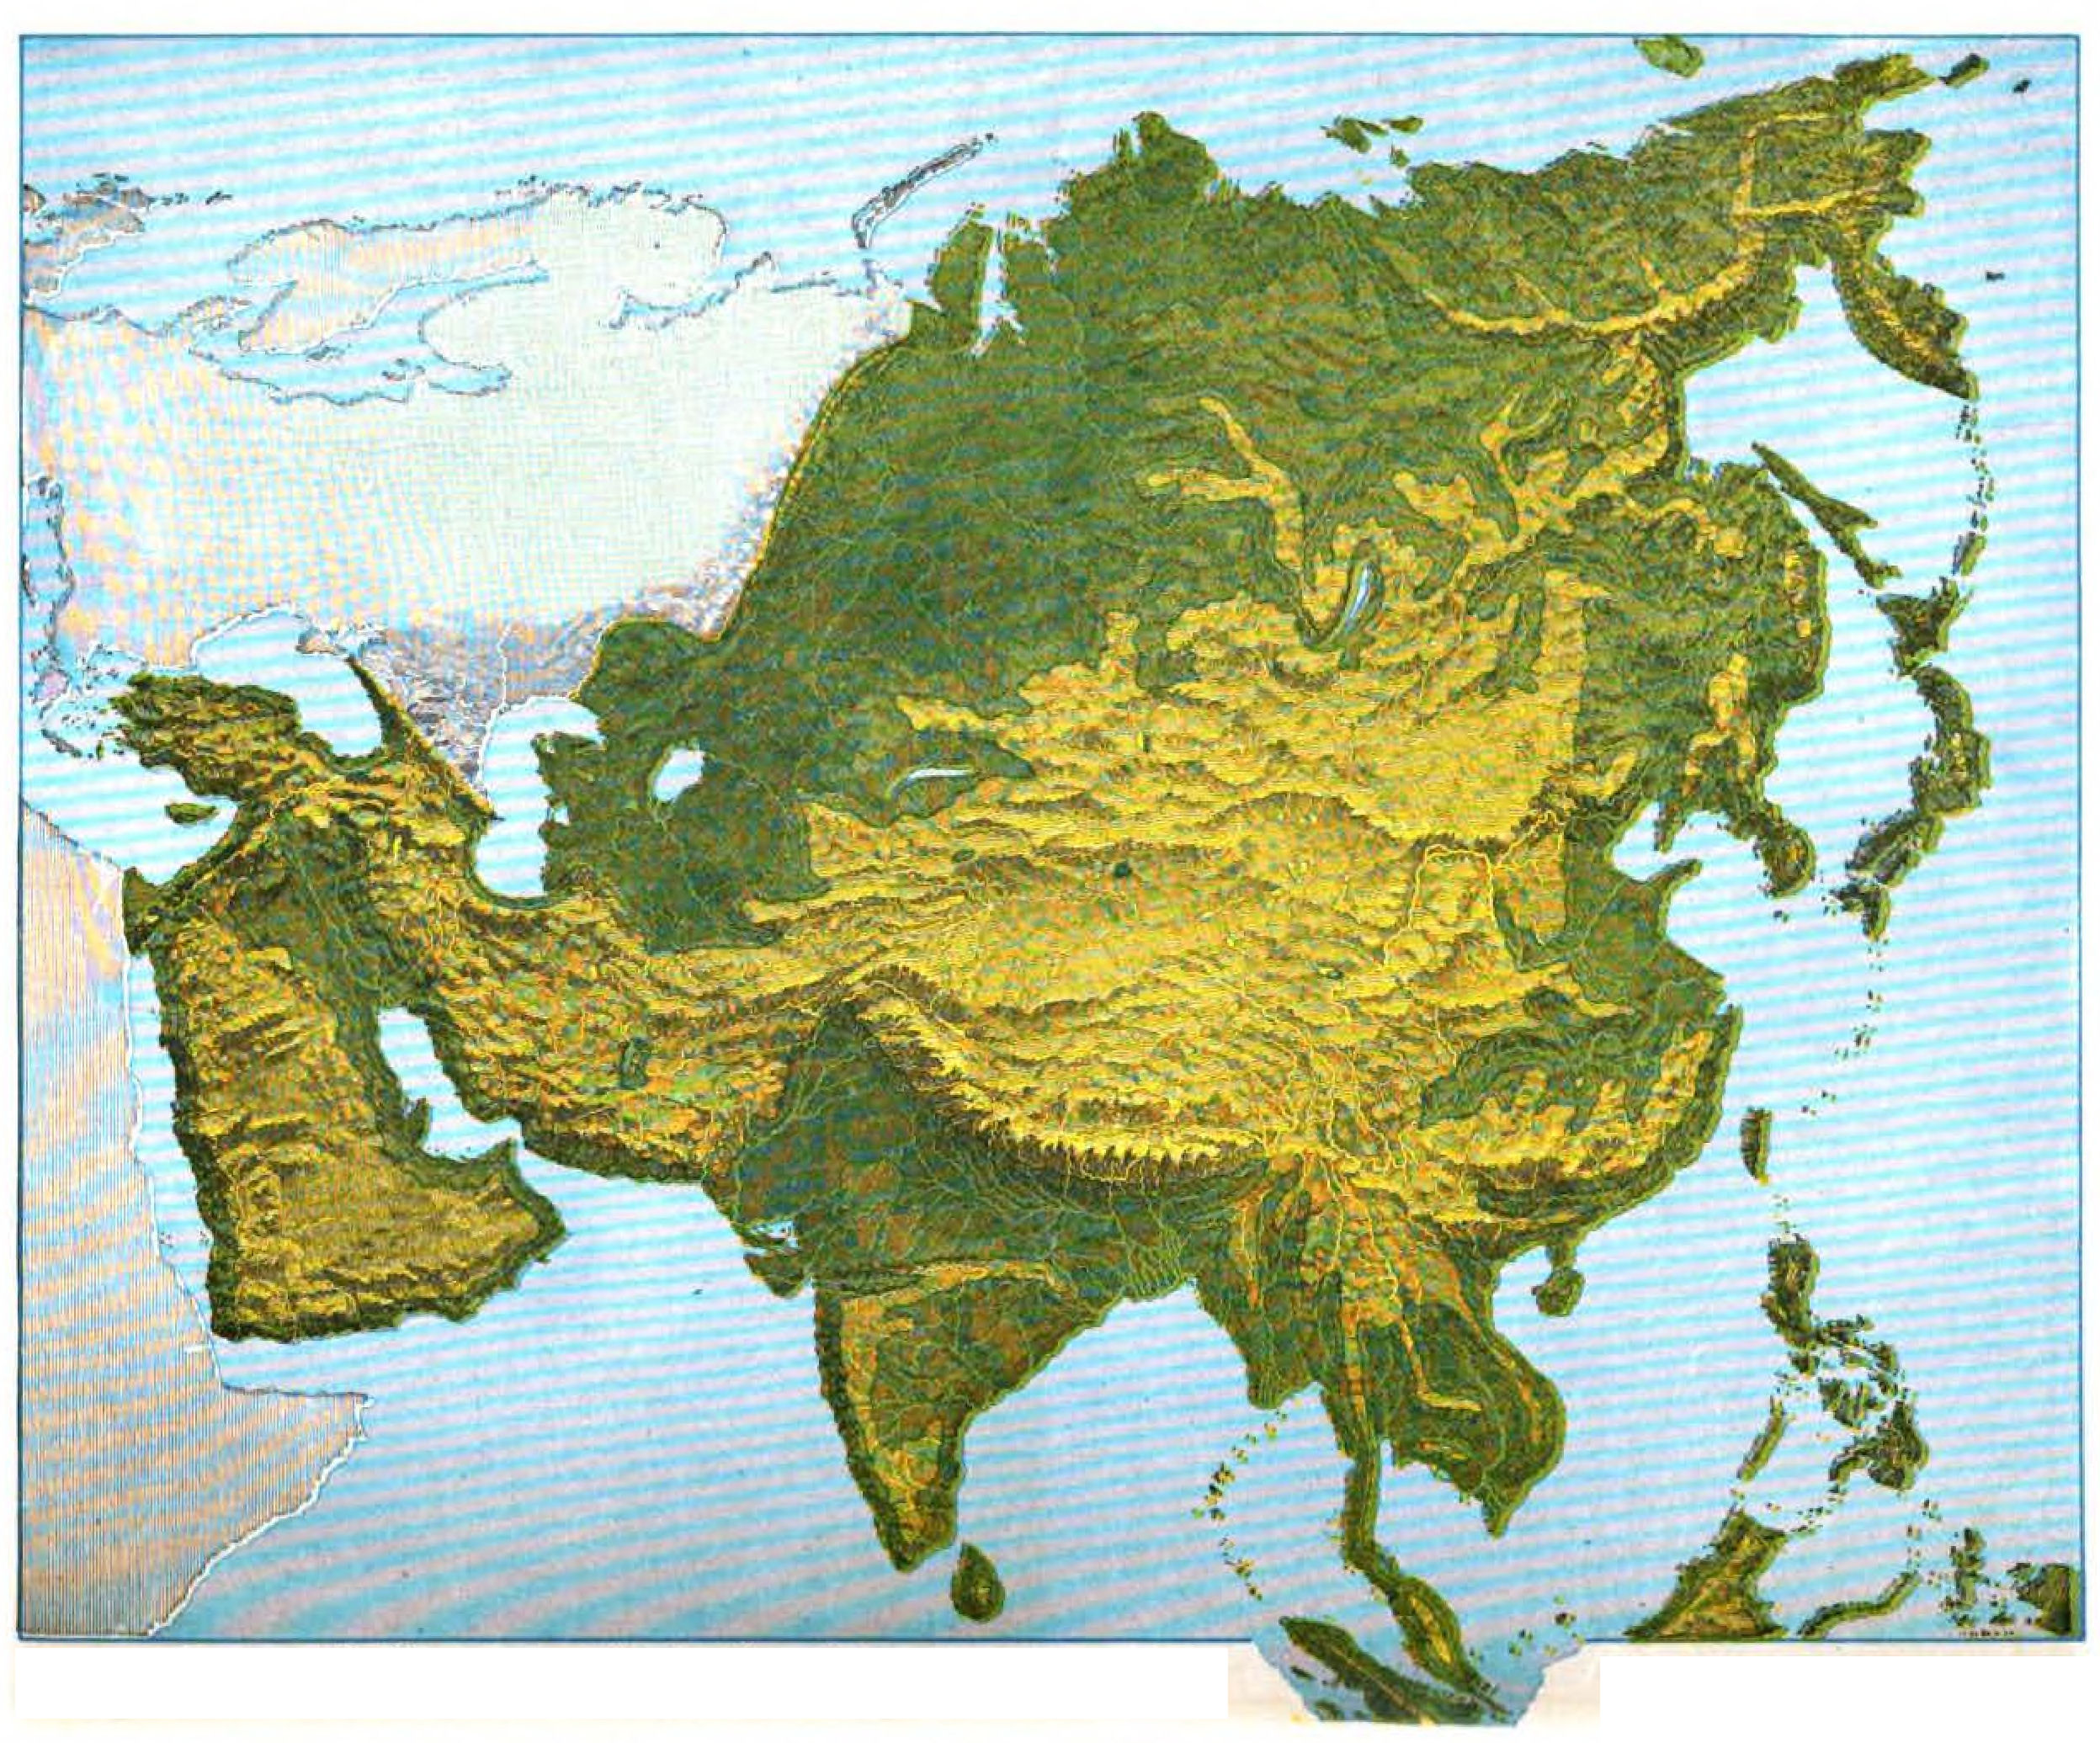 Geography Map Of Asia.File Maury Geography 115a Asia Relief Jpg Wikimedia Commons